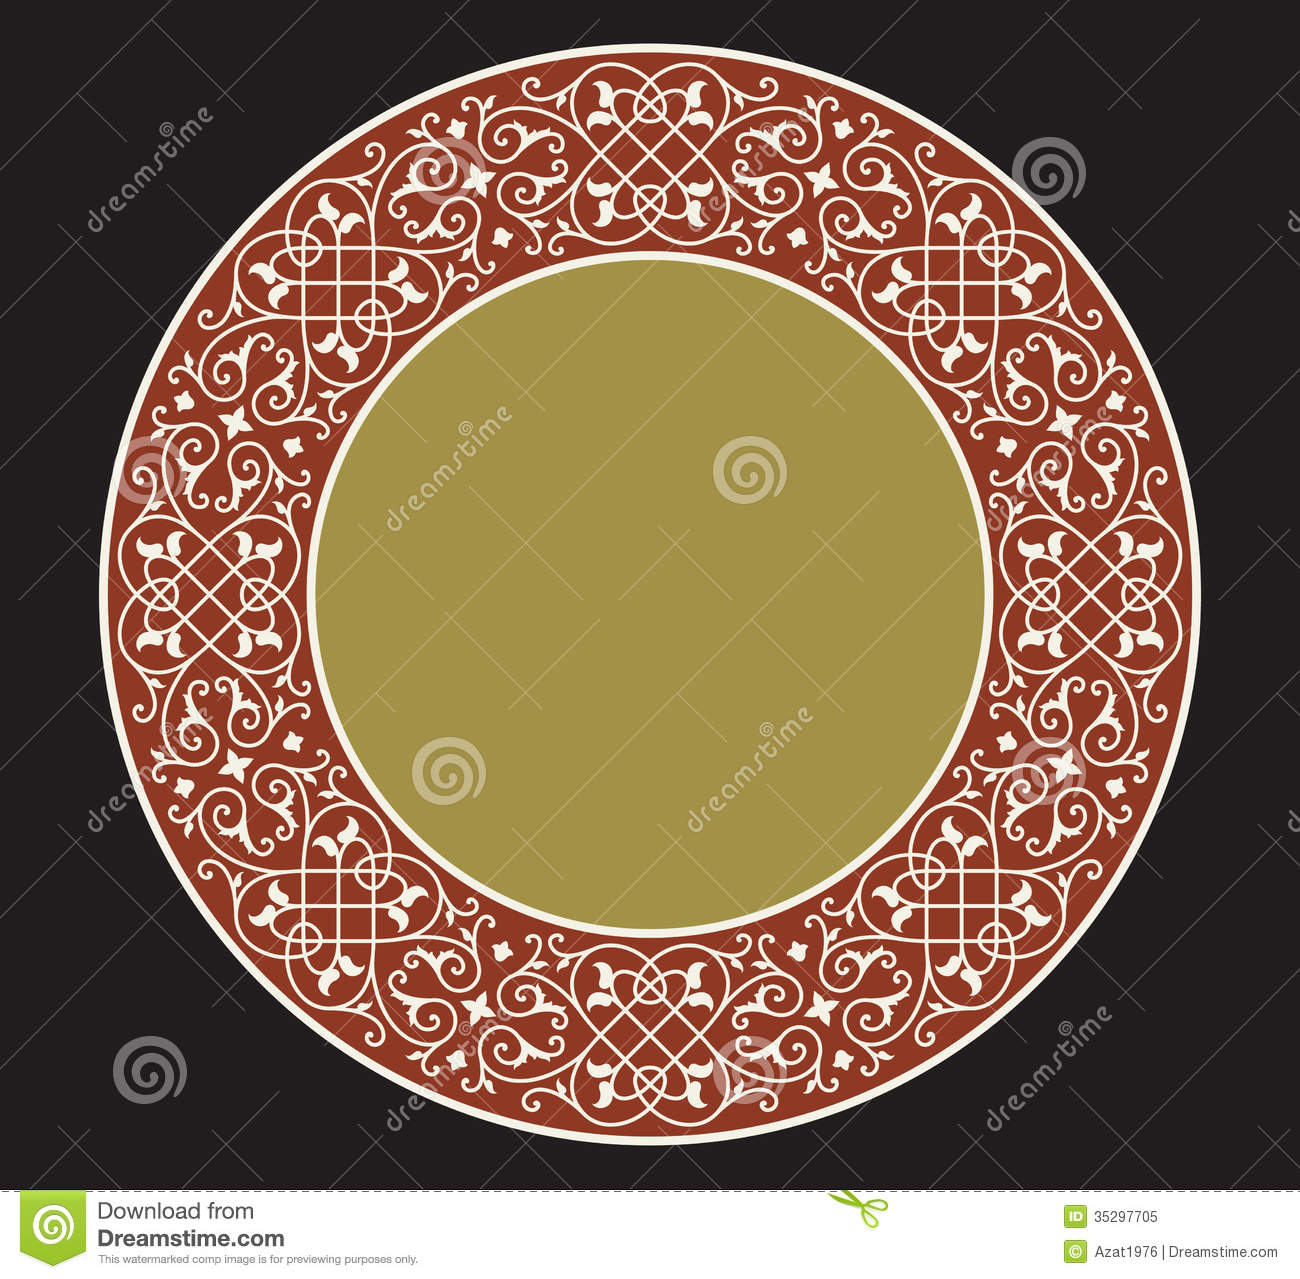 Milan Saucer Ornament Two Royalty Free Stock Photo - Image: 35297705